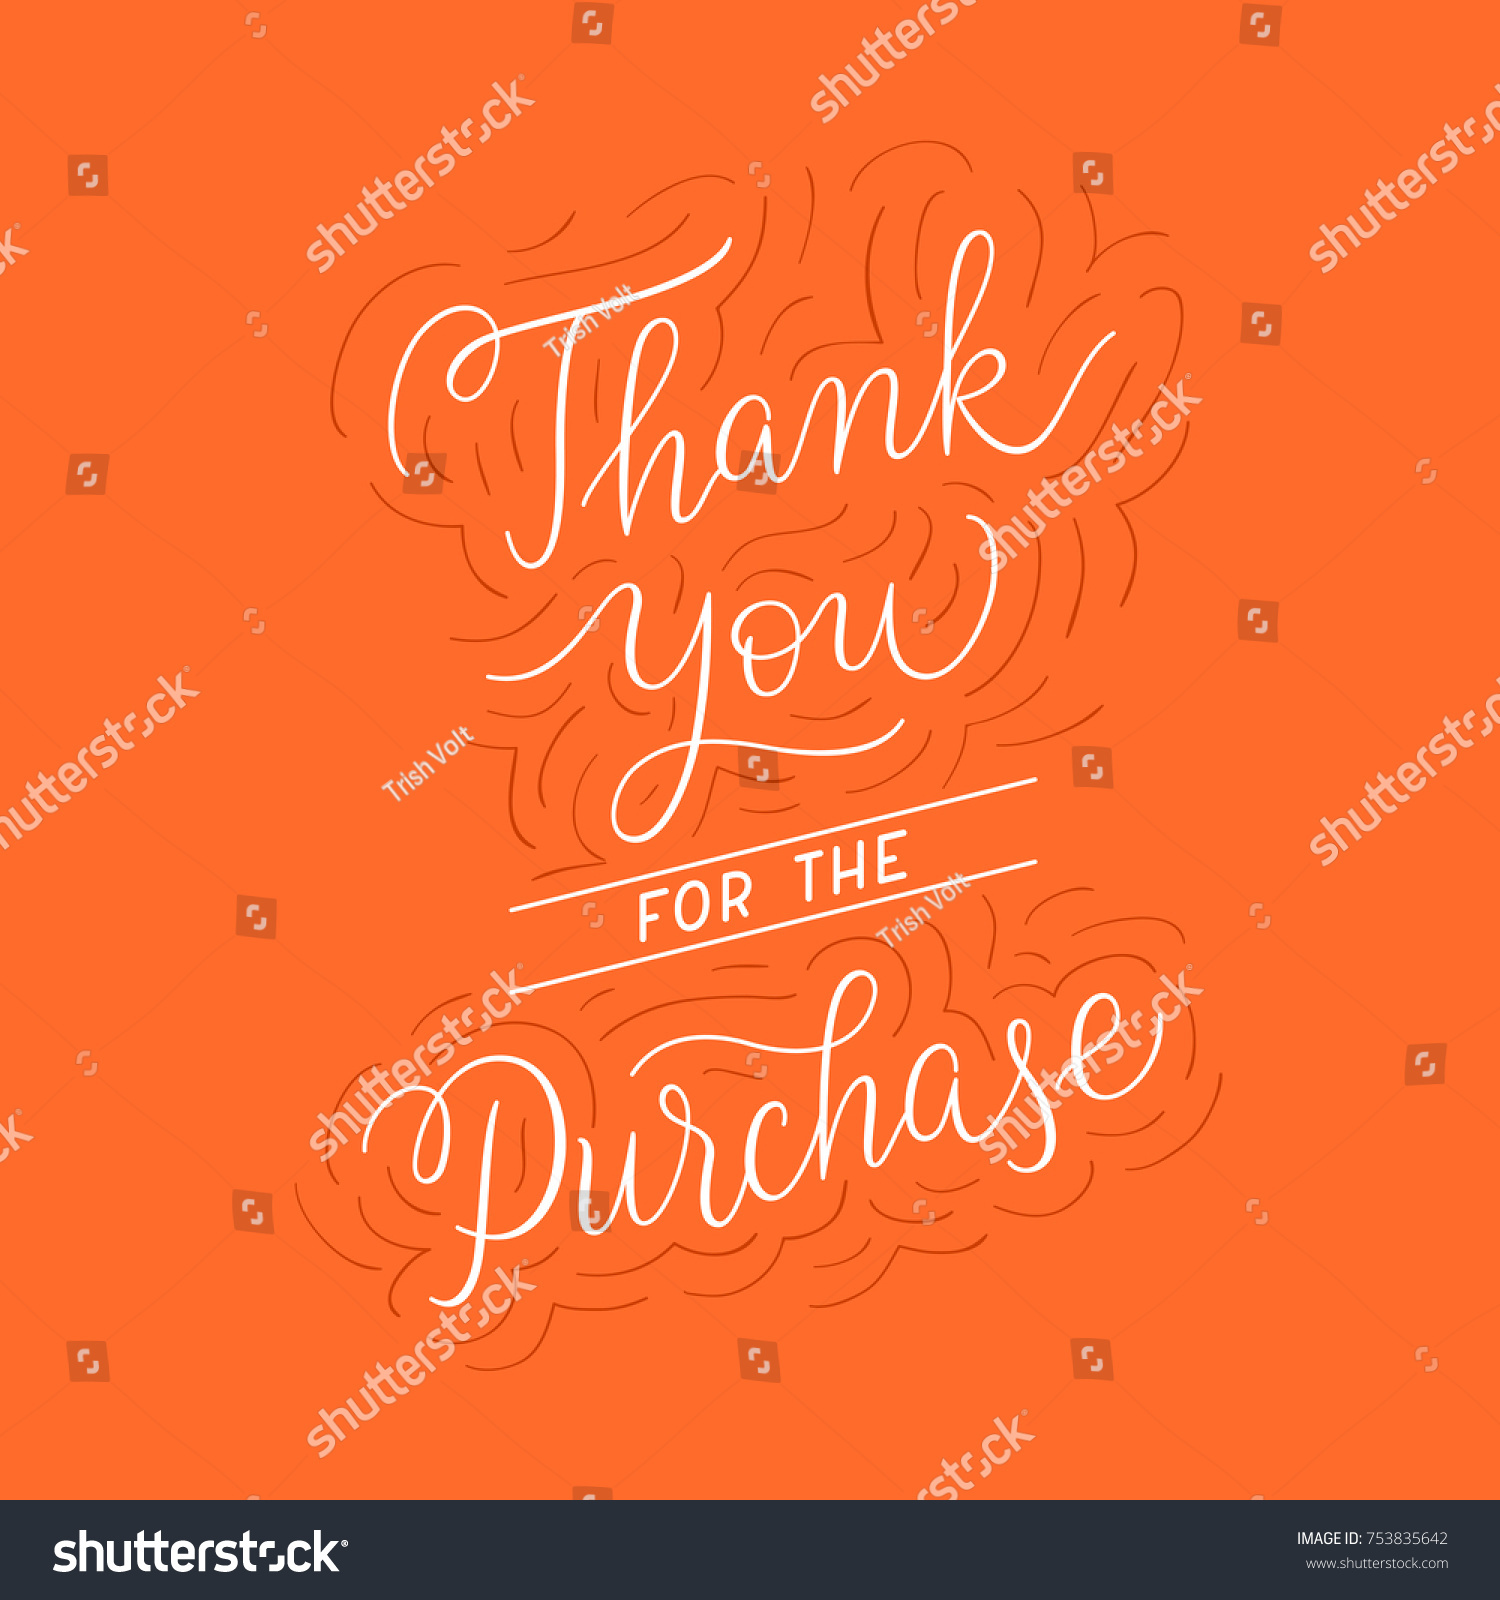 Thank you purchase sign customer service stock vector 753835642 thank you for the purchase sign customer service note after the order sale promo kristyandbryce Choice Image